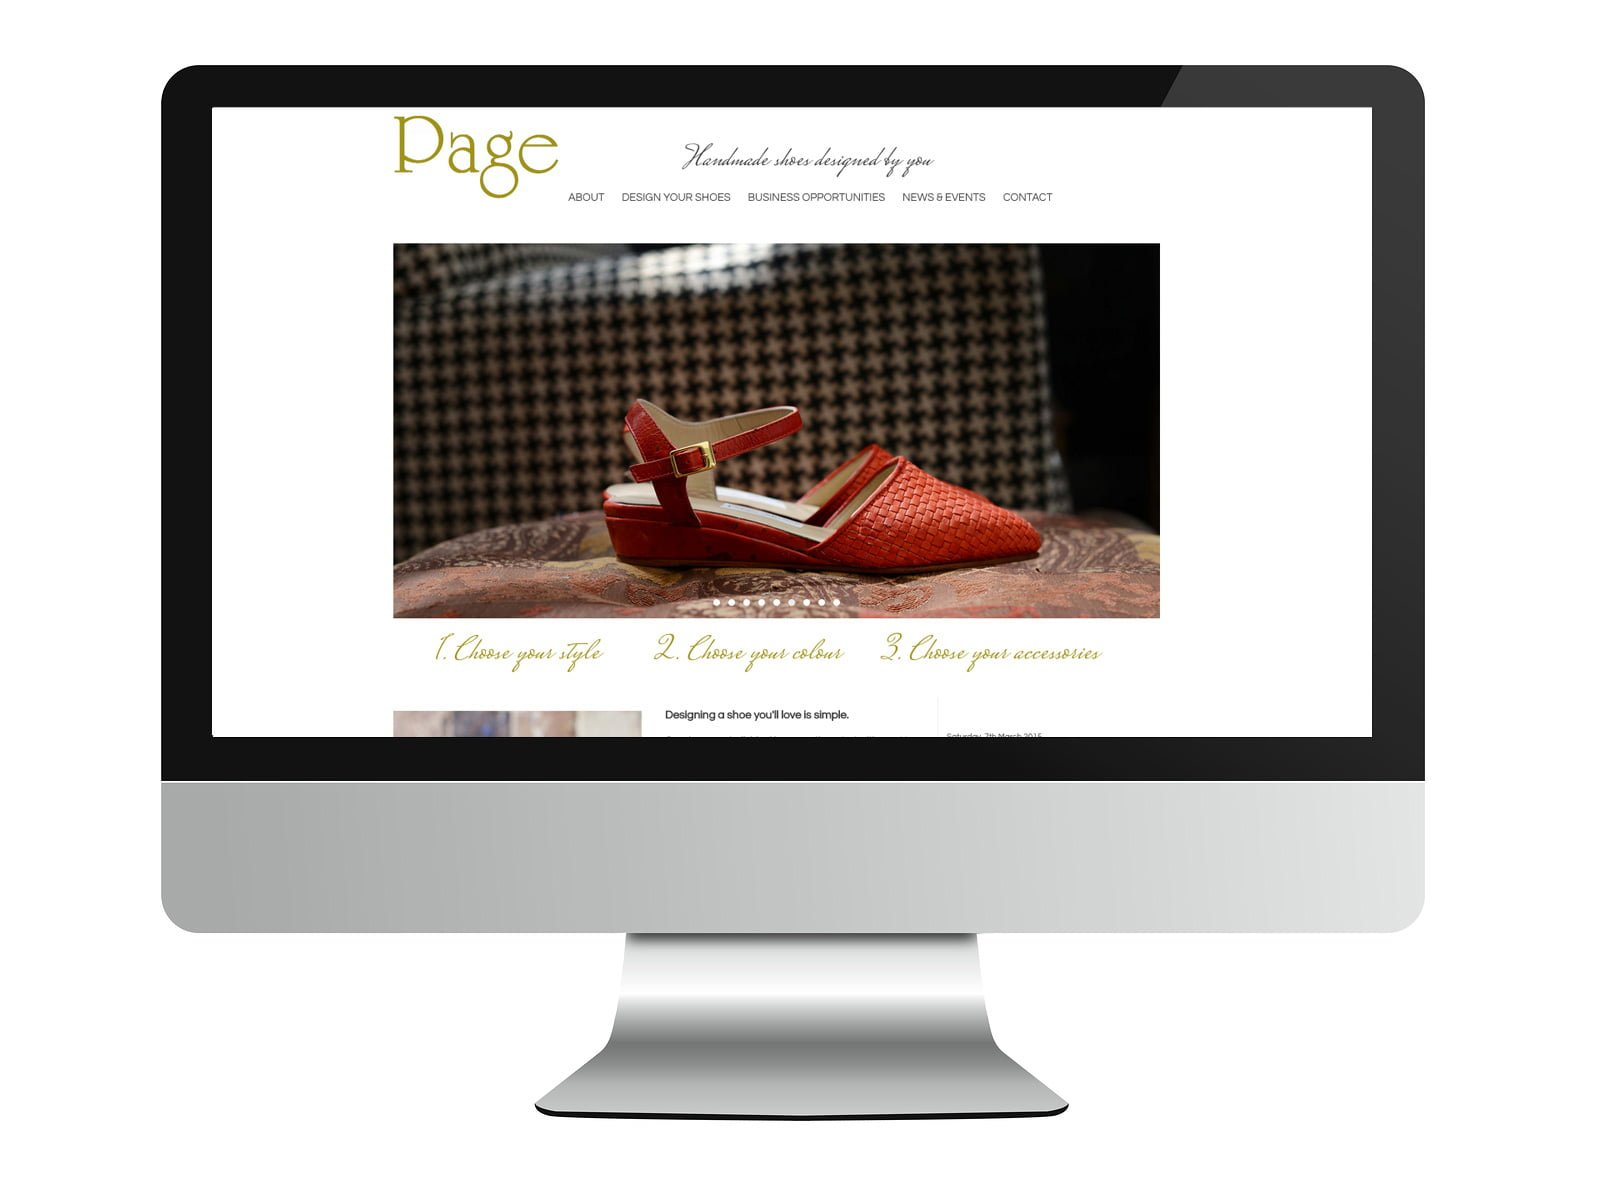 pageshoes